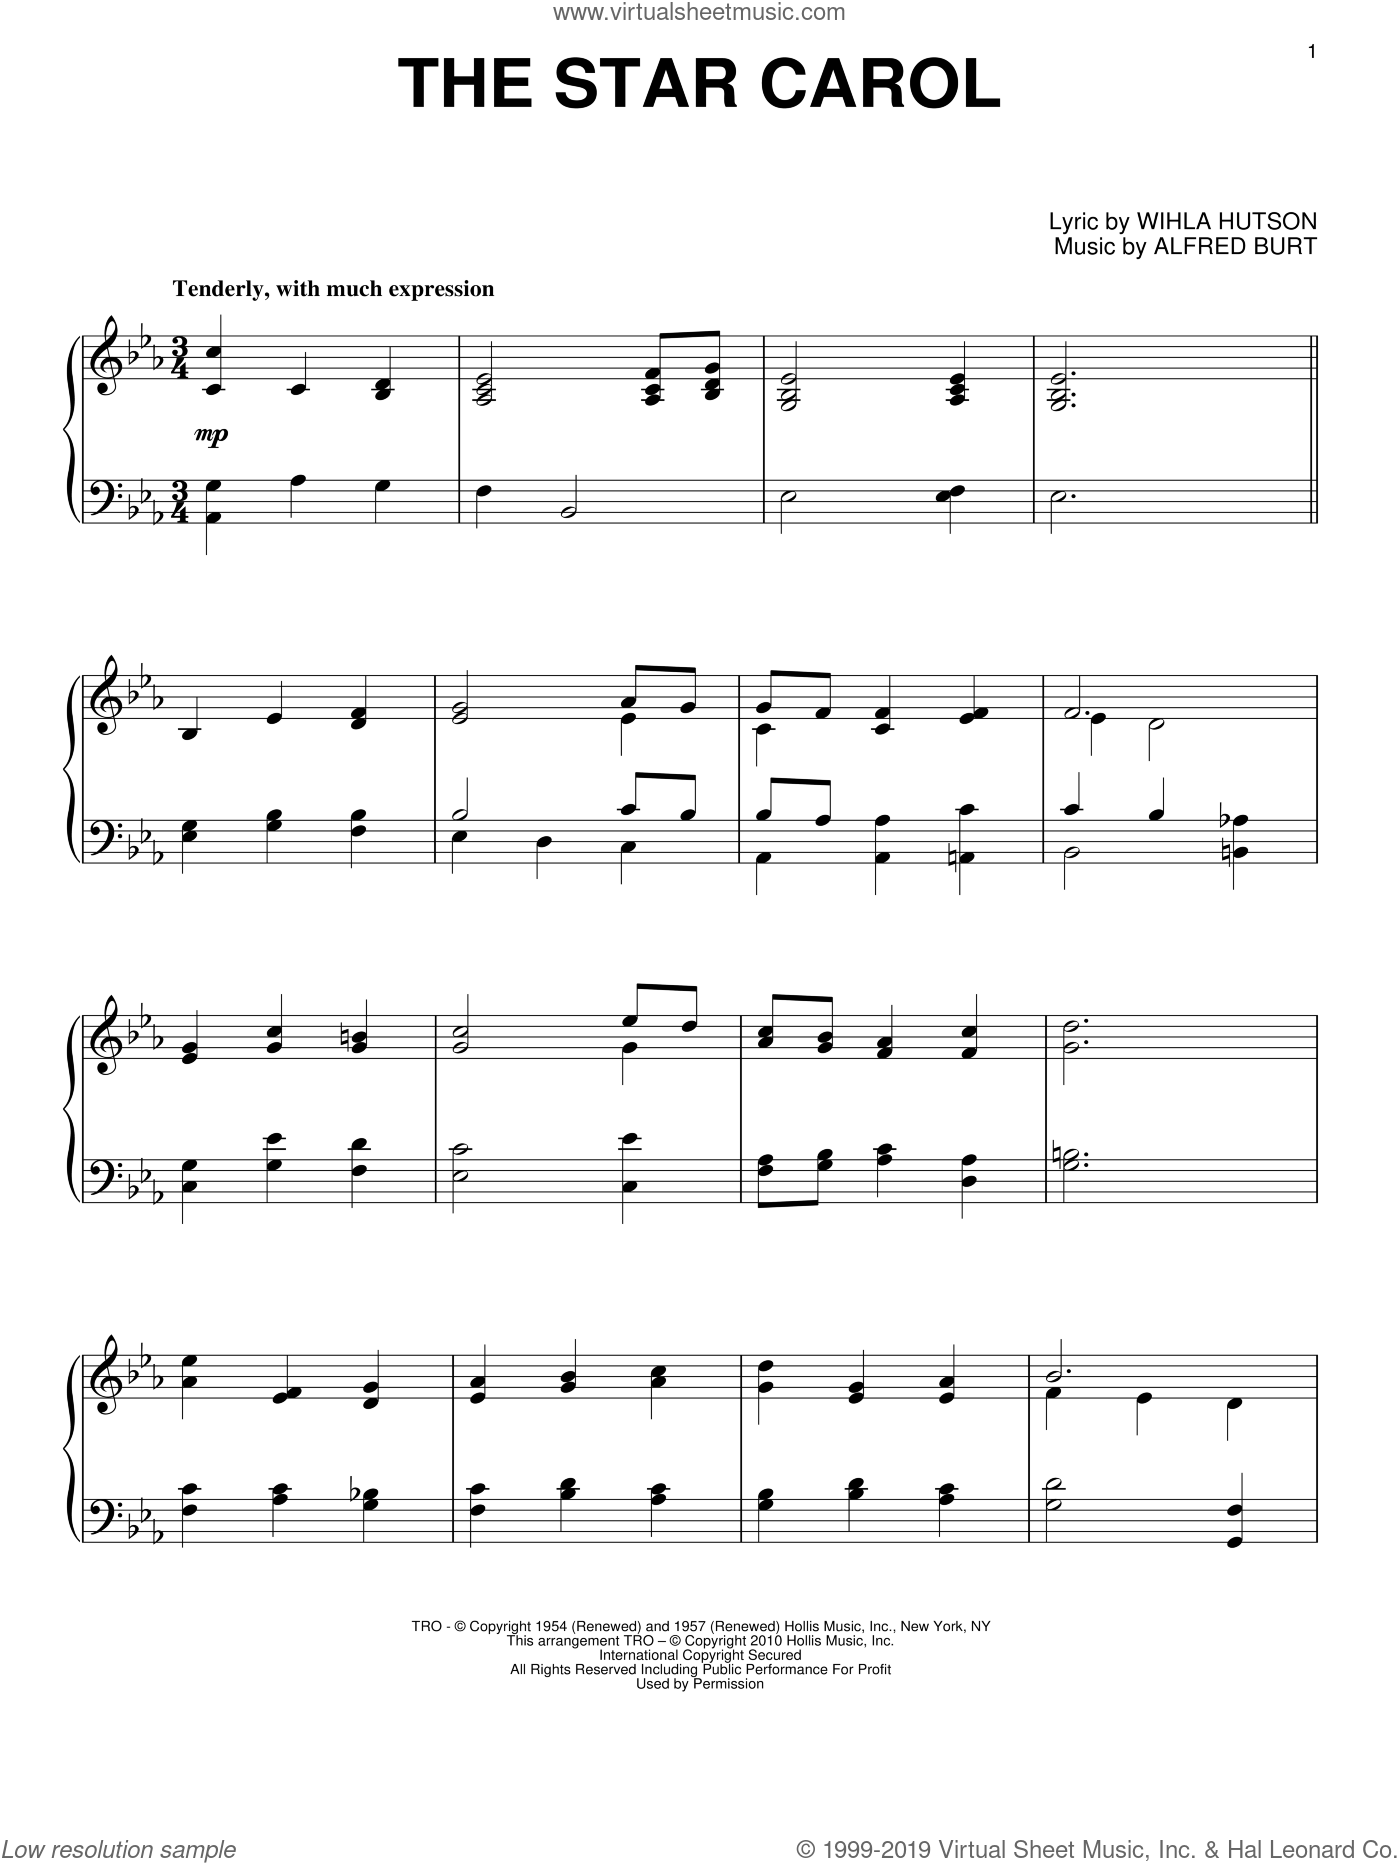 The Star Carol sheet music for piano solo by Peggy Lee, Alfred Burt and Wihla Hutson, intermediate. Score Image Preview.